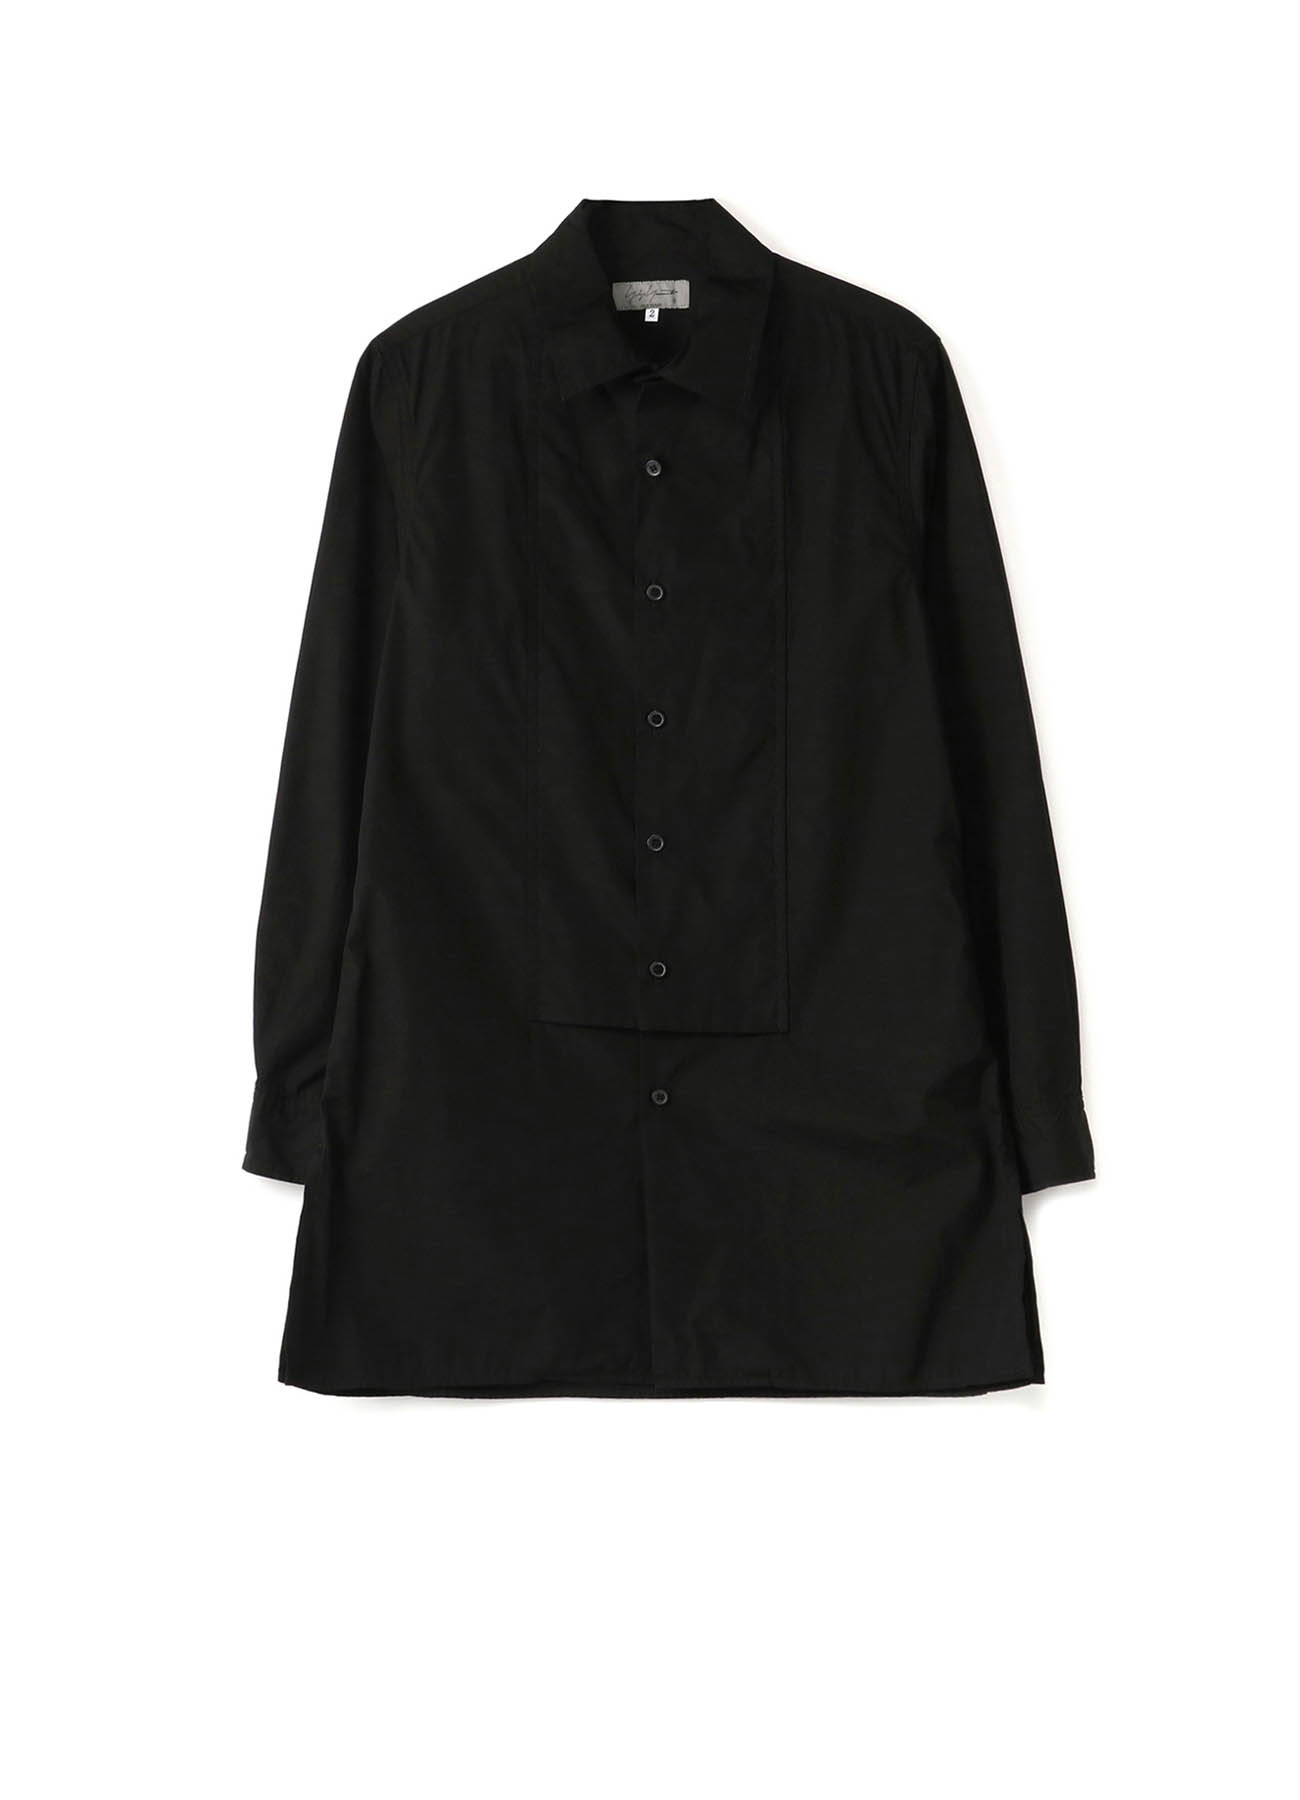 CHAIN STITCH BROAD PATCH SHIRT